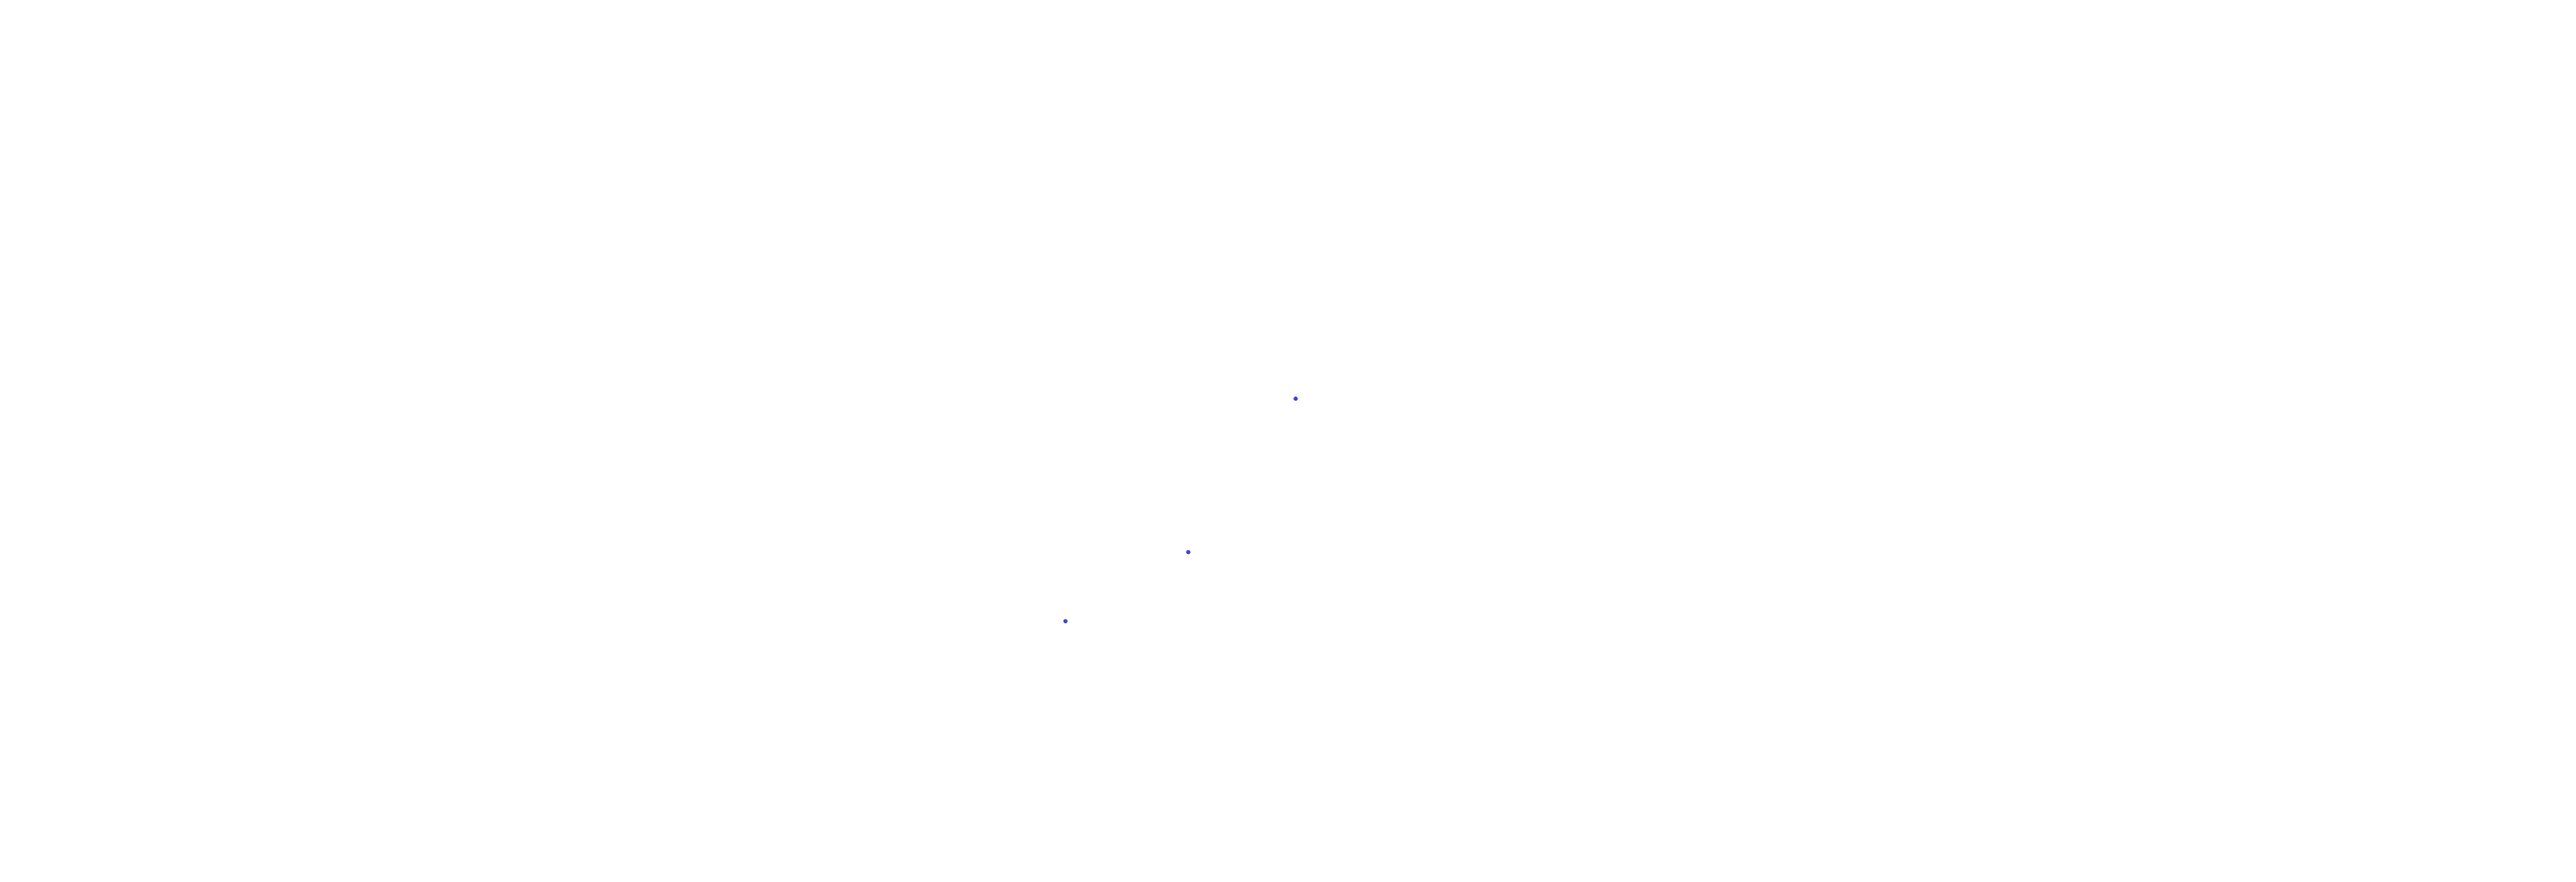 Unisymes